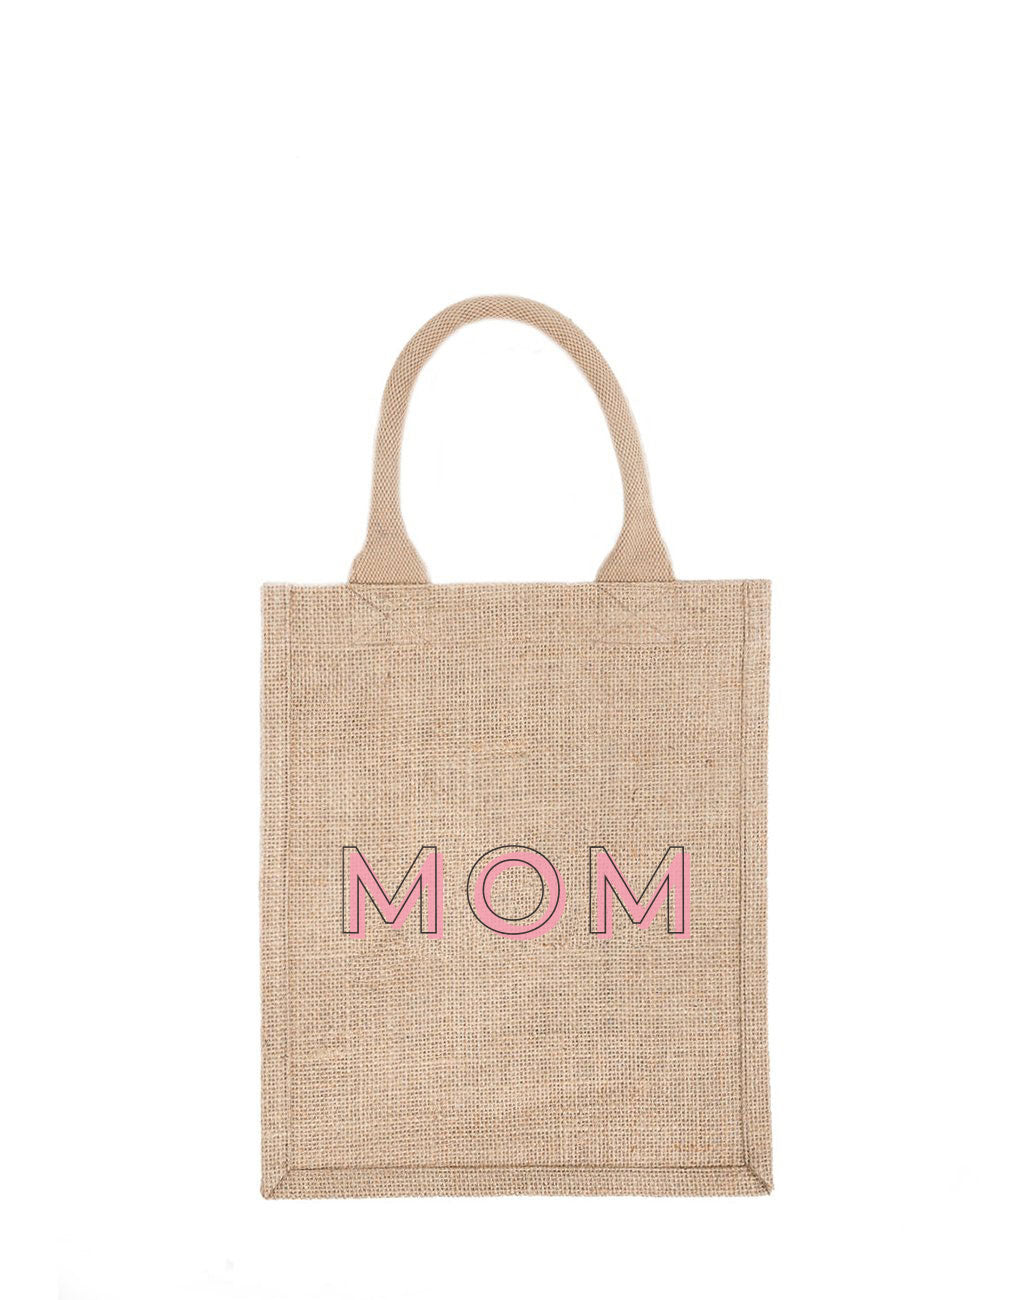 Gift Tote - Mom | The Little Market